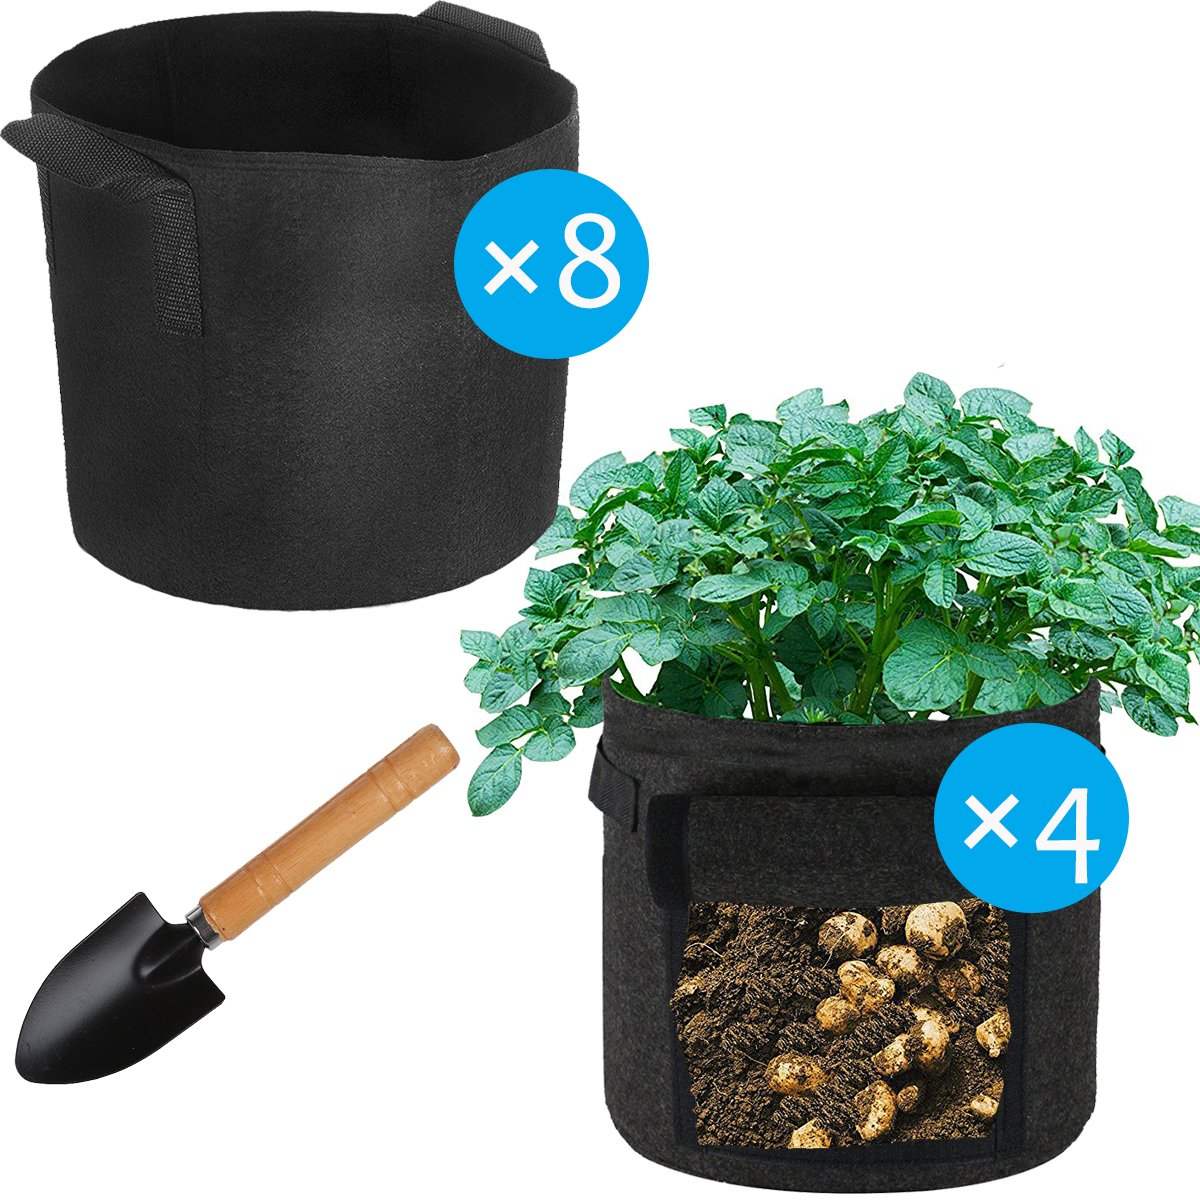 SunKoda Grow Bags 8 Pack 5 Gallon Fabric Pots 4 Pack 7 Gallon Potato Growing Bags Indoor Planter Pots for Outdoor Garden Tree, Flower, Bean, Tomato, Vegetable Planting by SunKoda